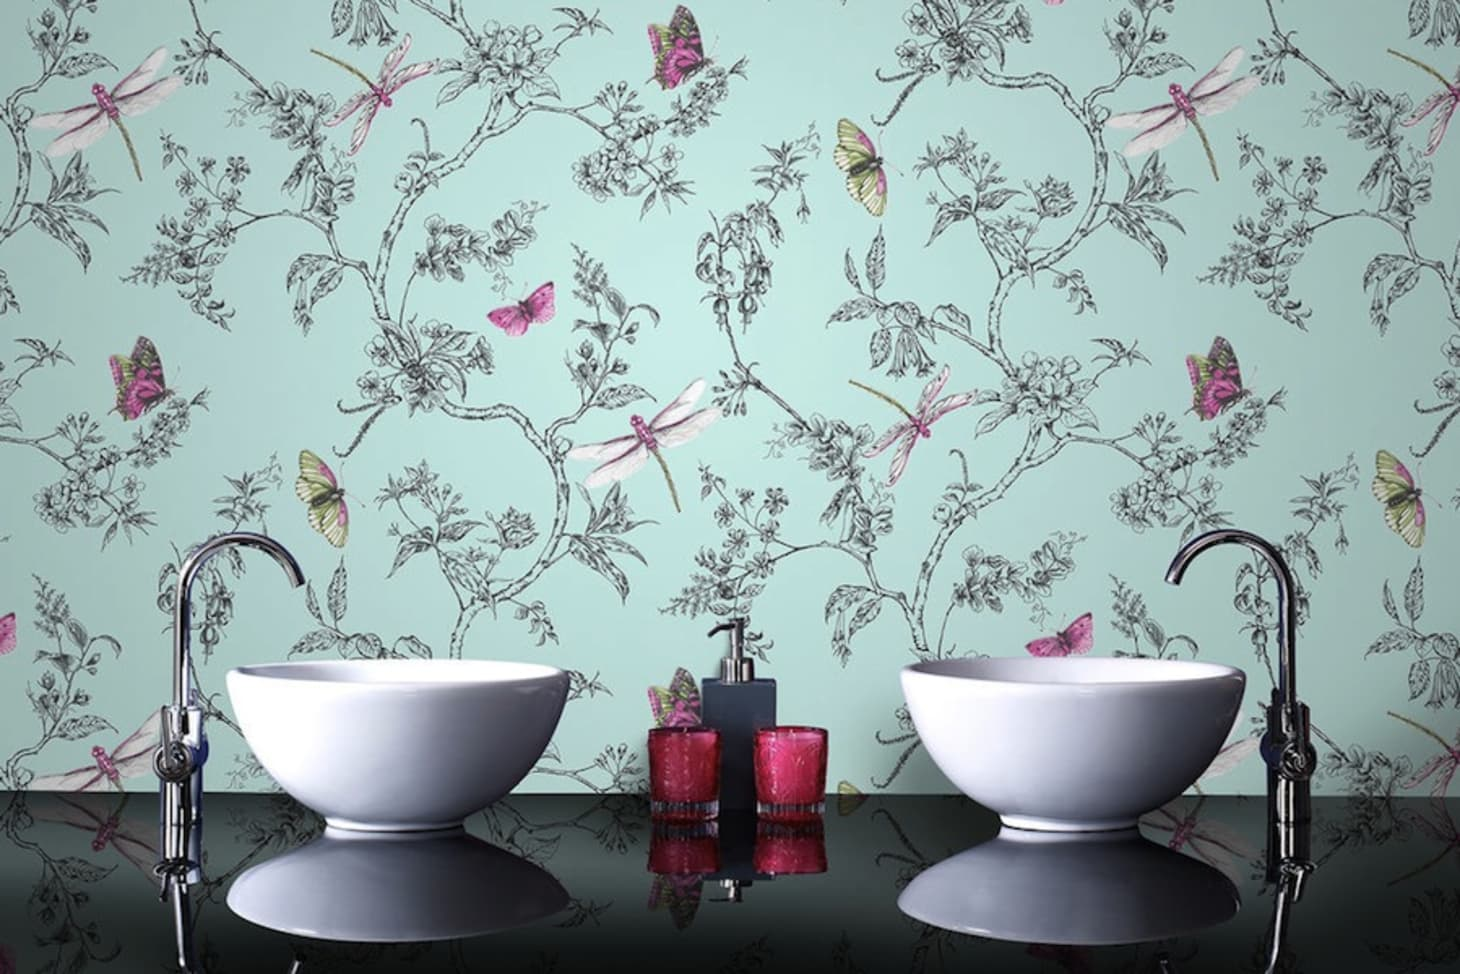 Where to Buy Temporary and Removable Wallpaper | Apartment ...